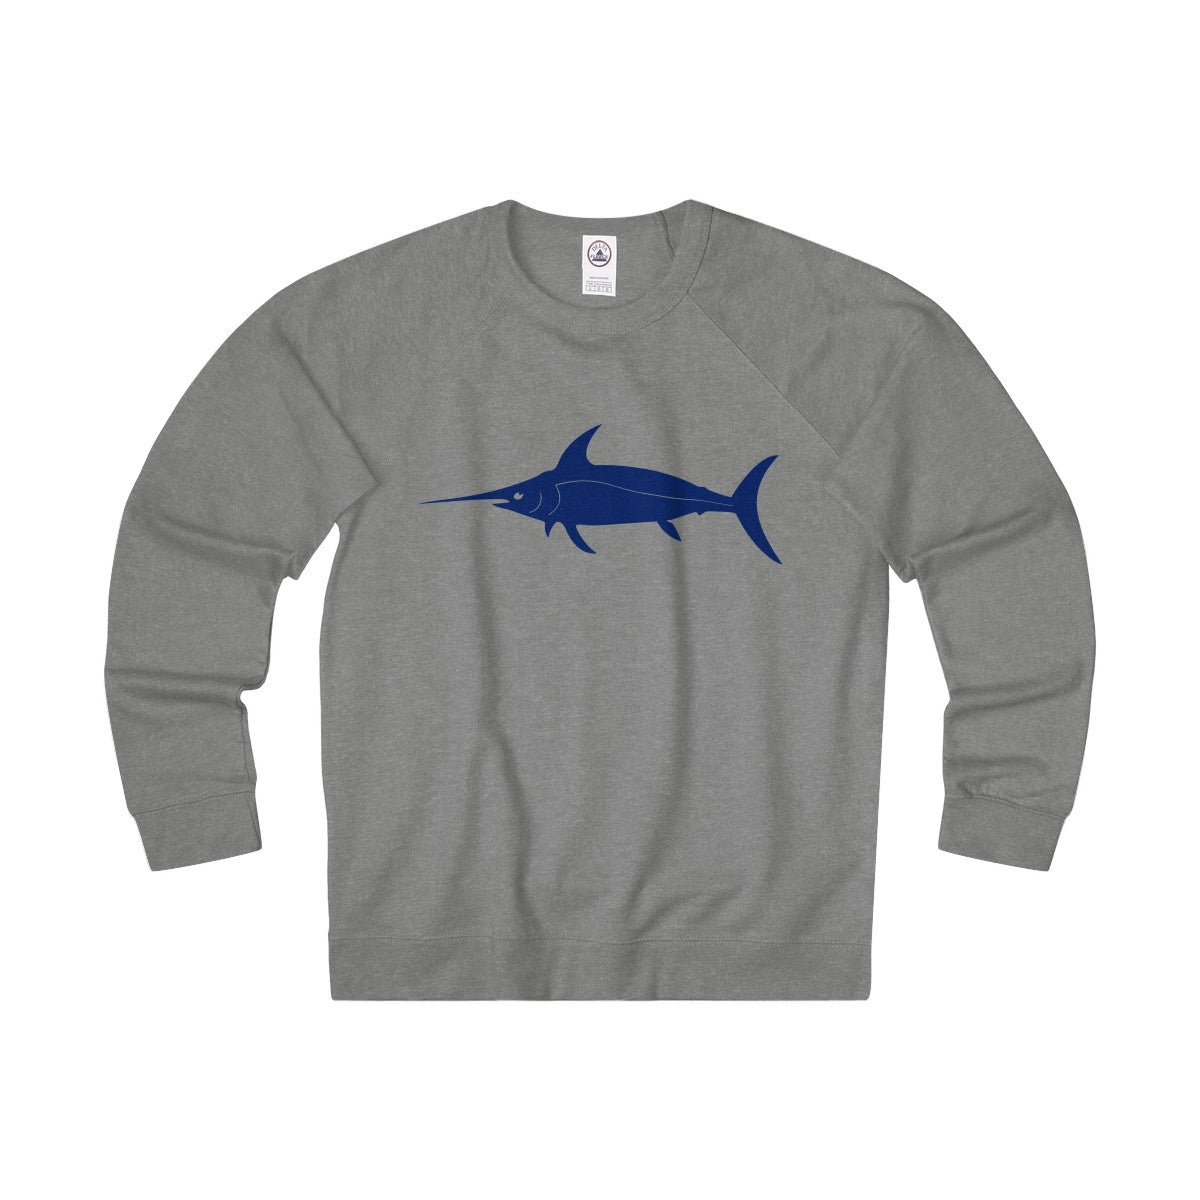 Miramar® Swordfish Collection Adult Unisex French Terry Long Sleeve